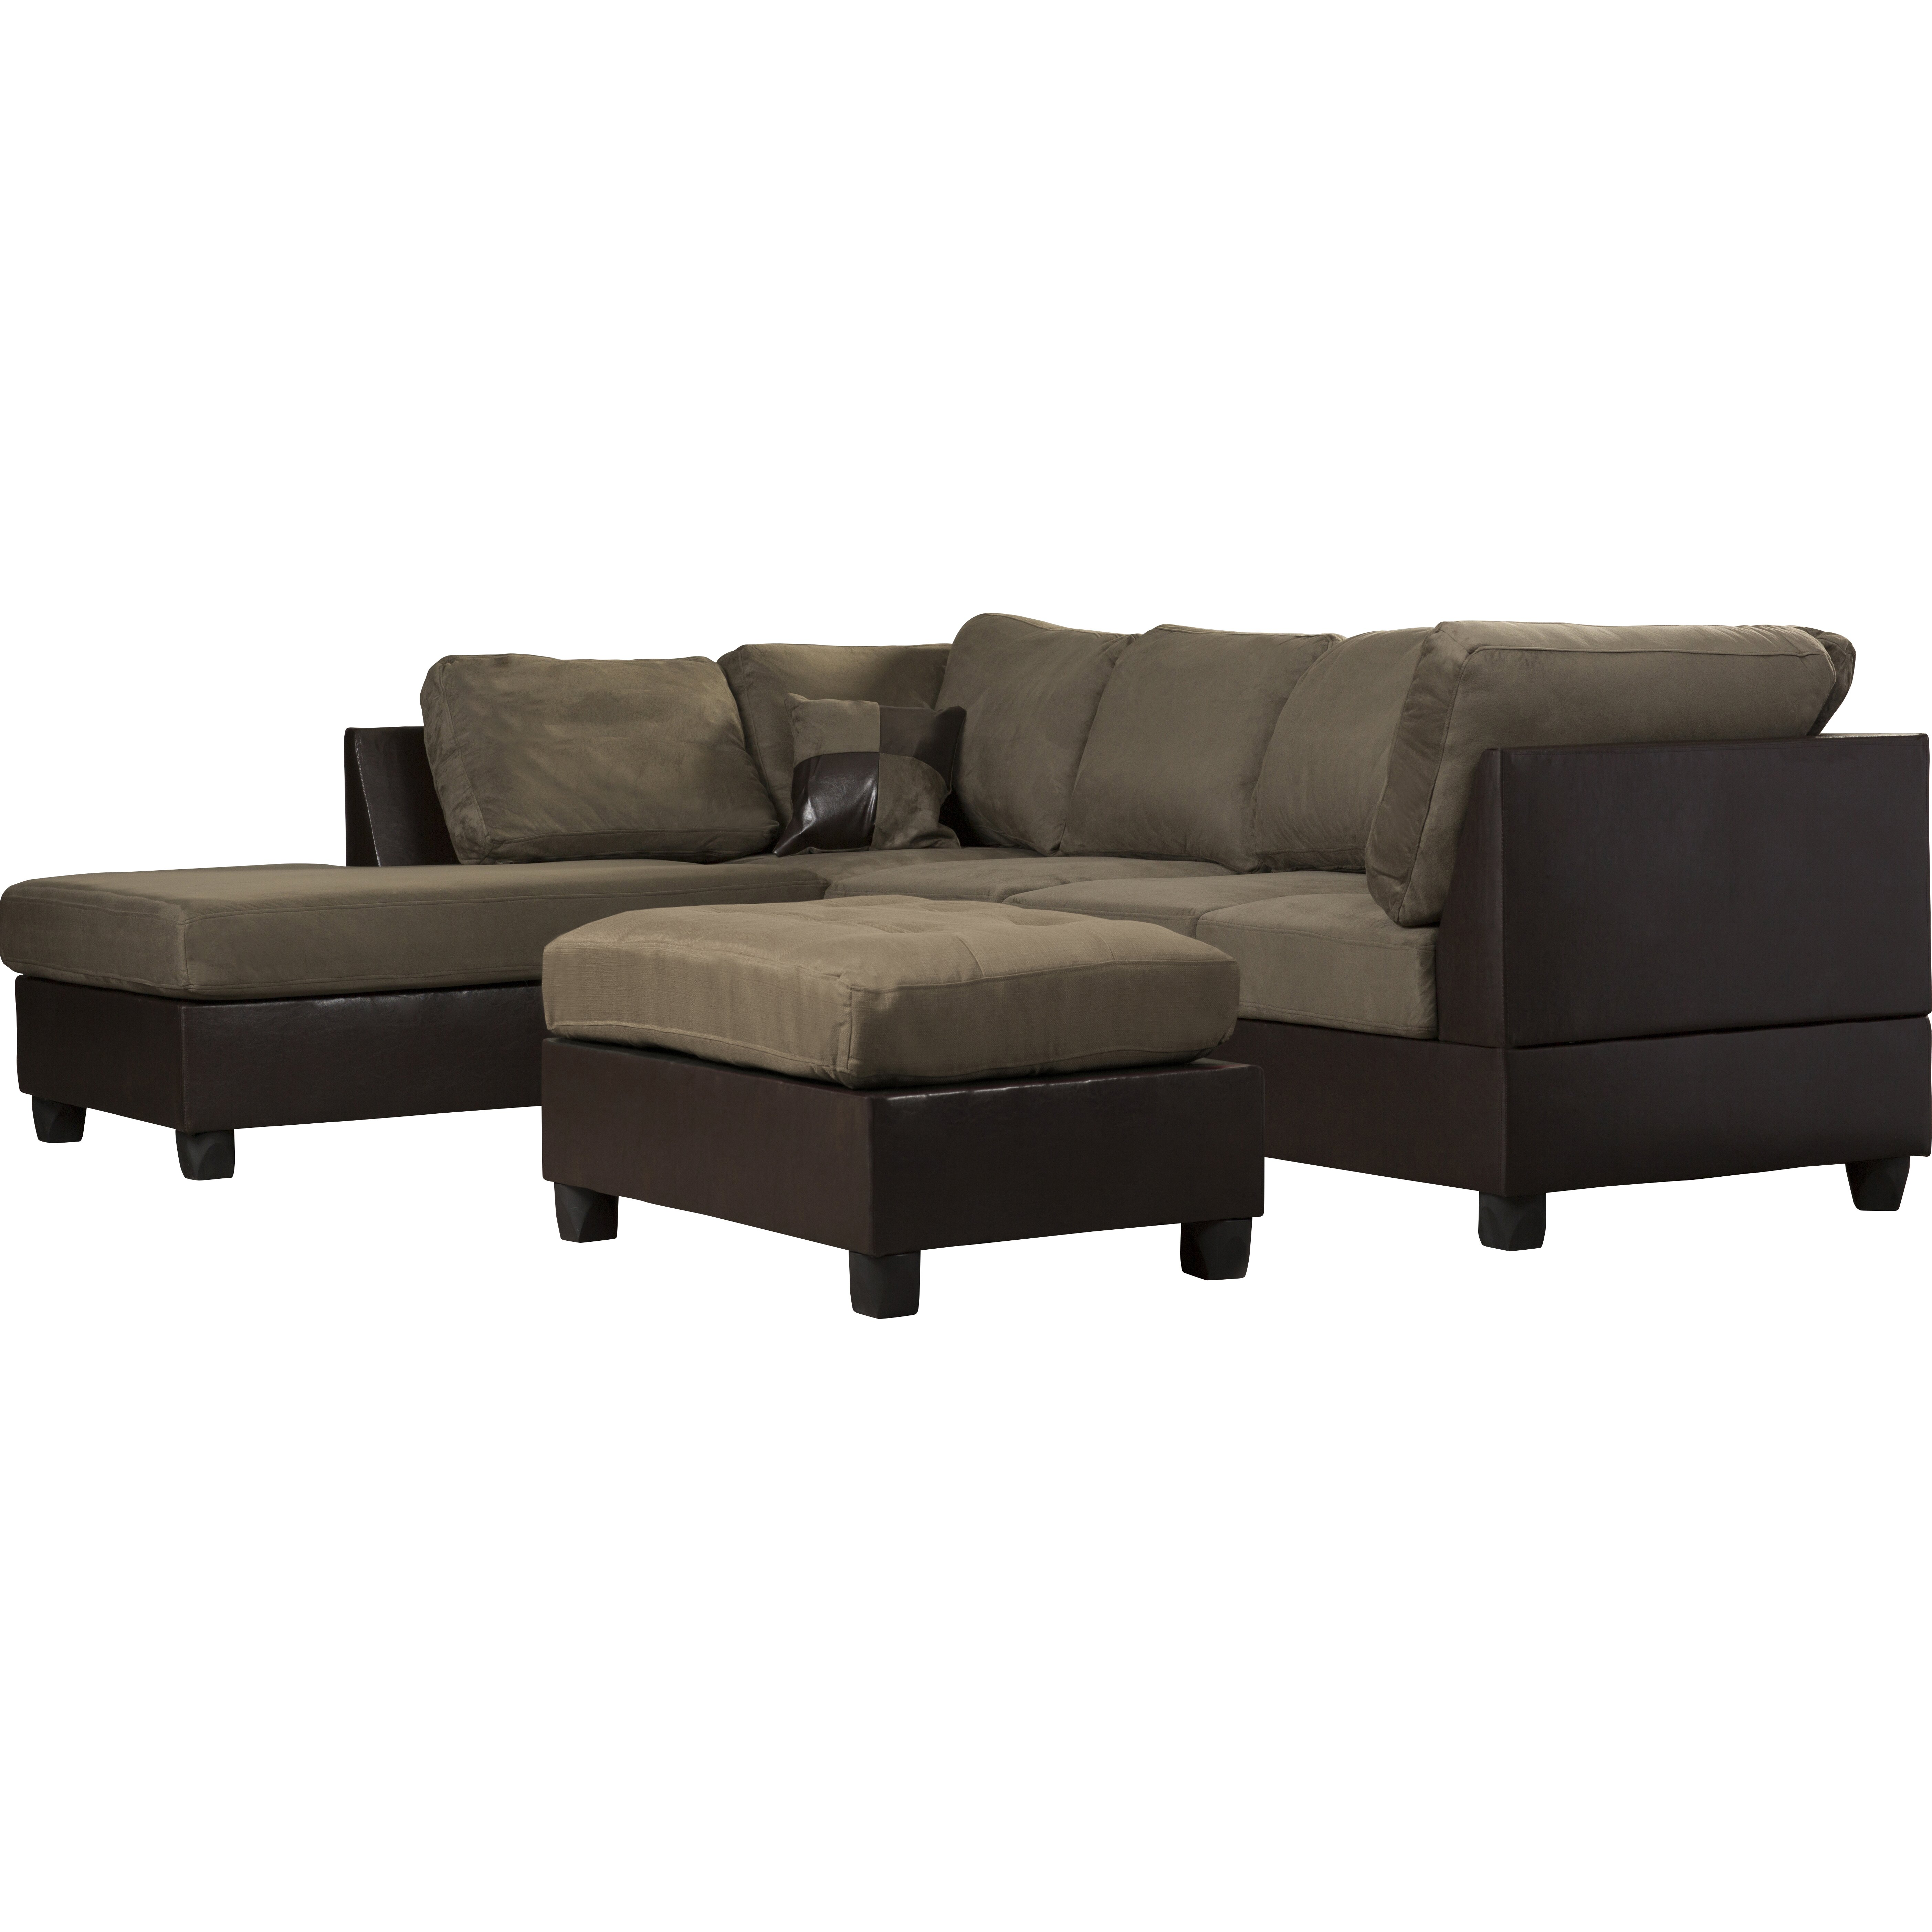 Reversible sectional sofa chaise andover mills corporate for Alexander sectional sofa chaise